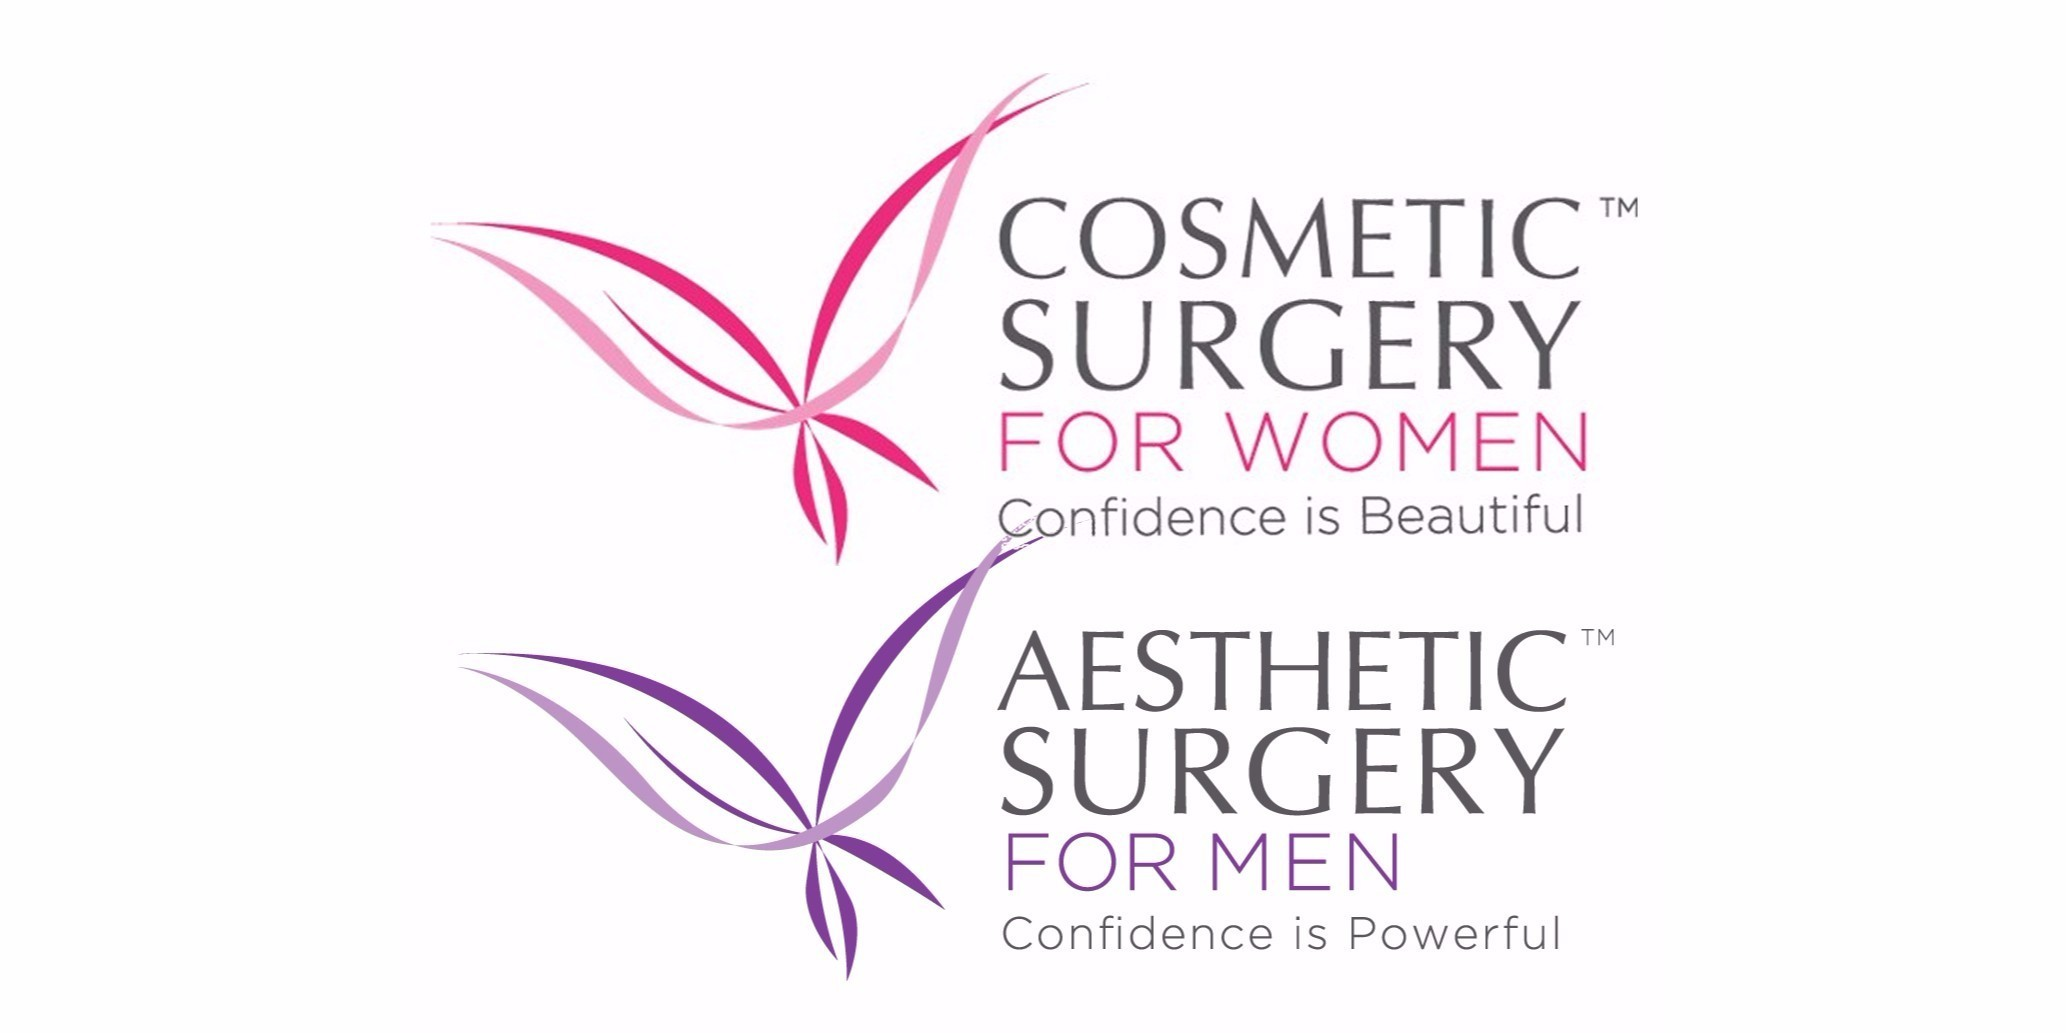 Cosmetic Surgery for Women & Aesthetic Surgery for Men